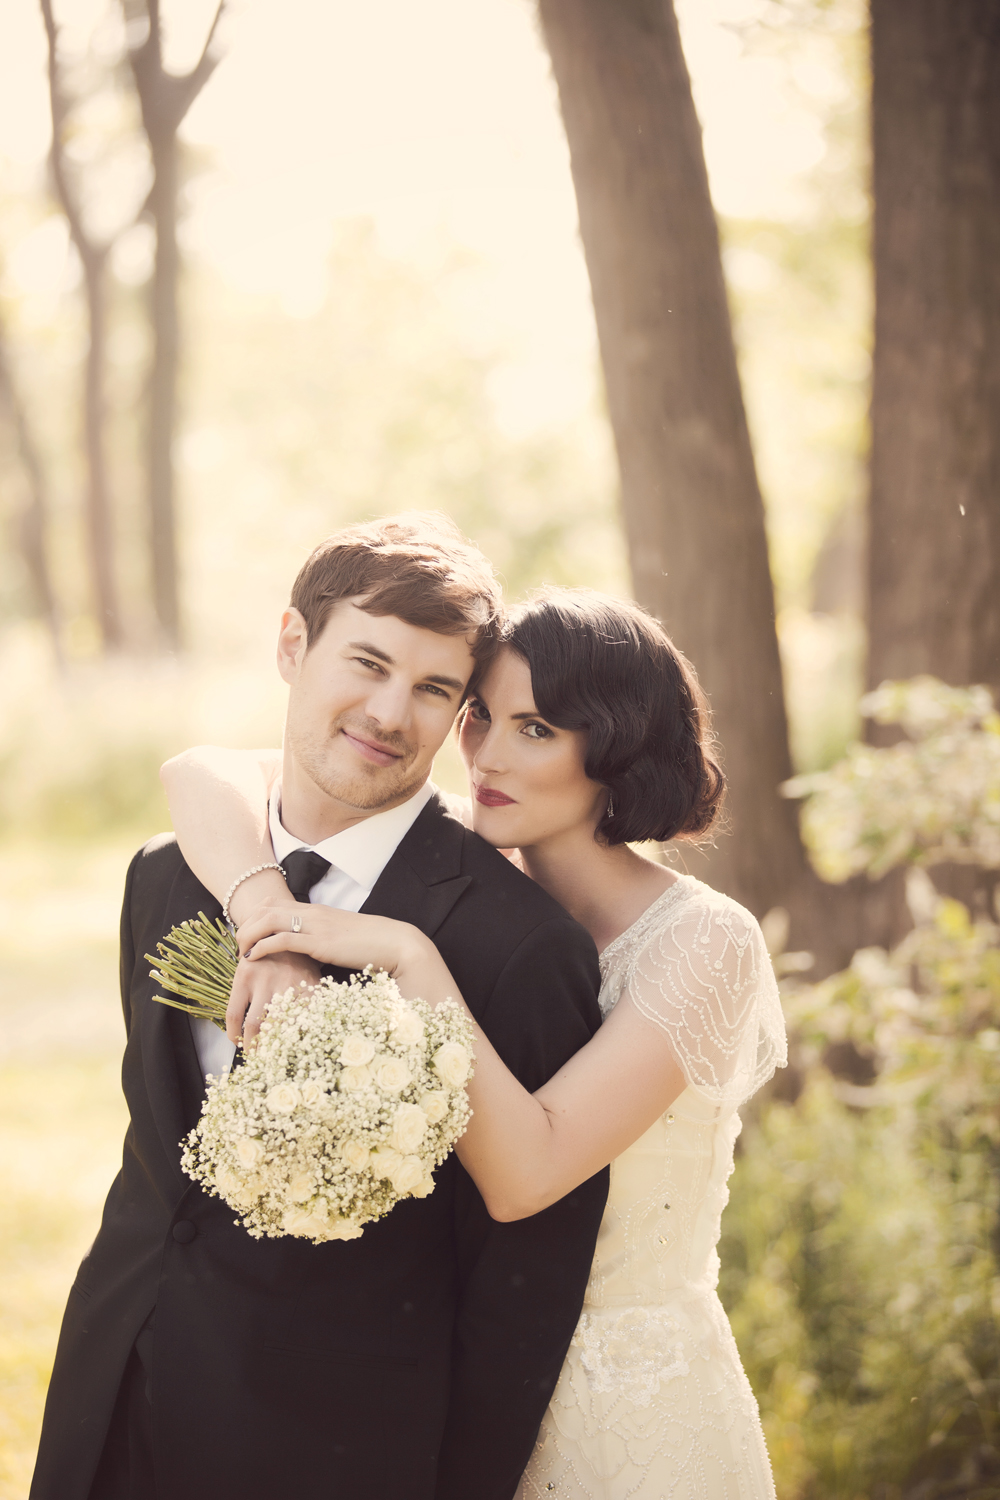 """A 1920's Themed Wedding in Toronto, Ontario.""   Weddingbells Blog,  April 2013. Photo: Naomi Studios"